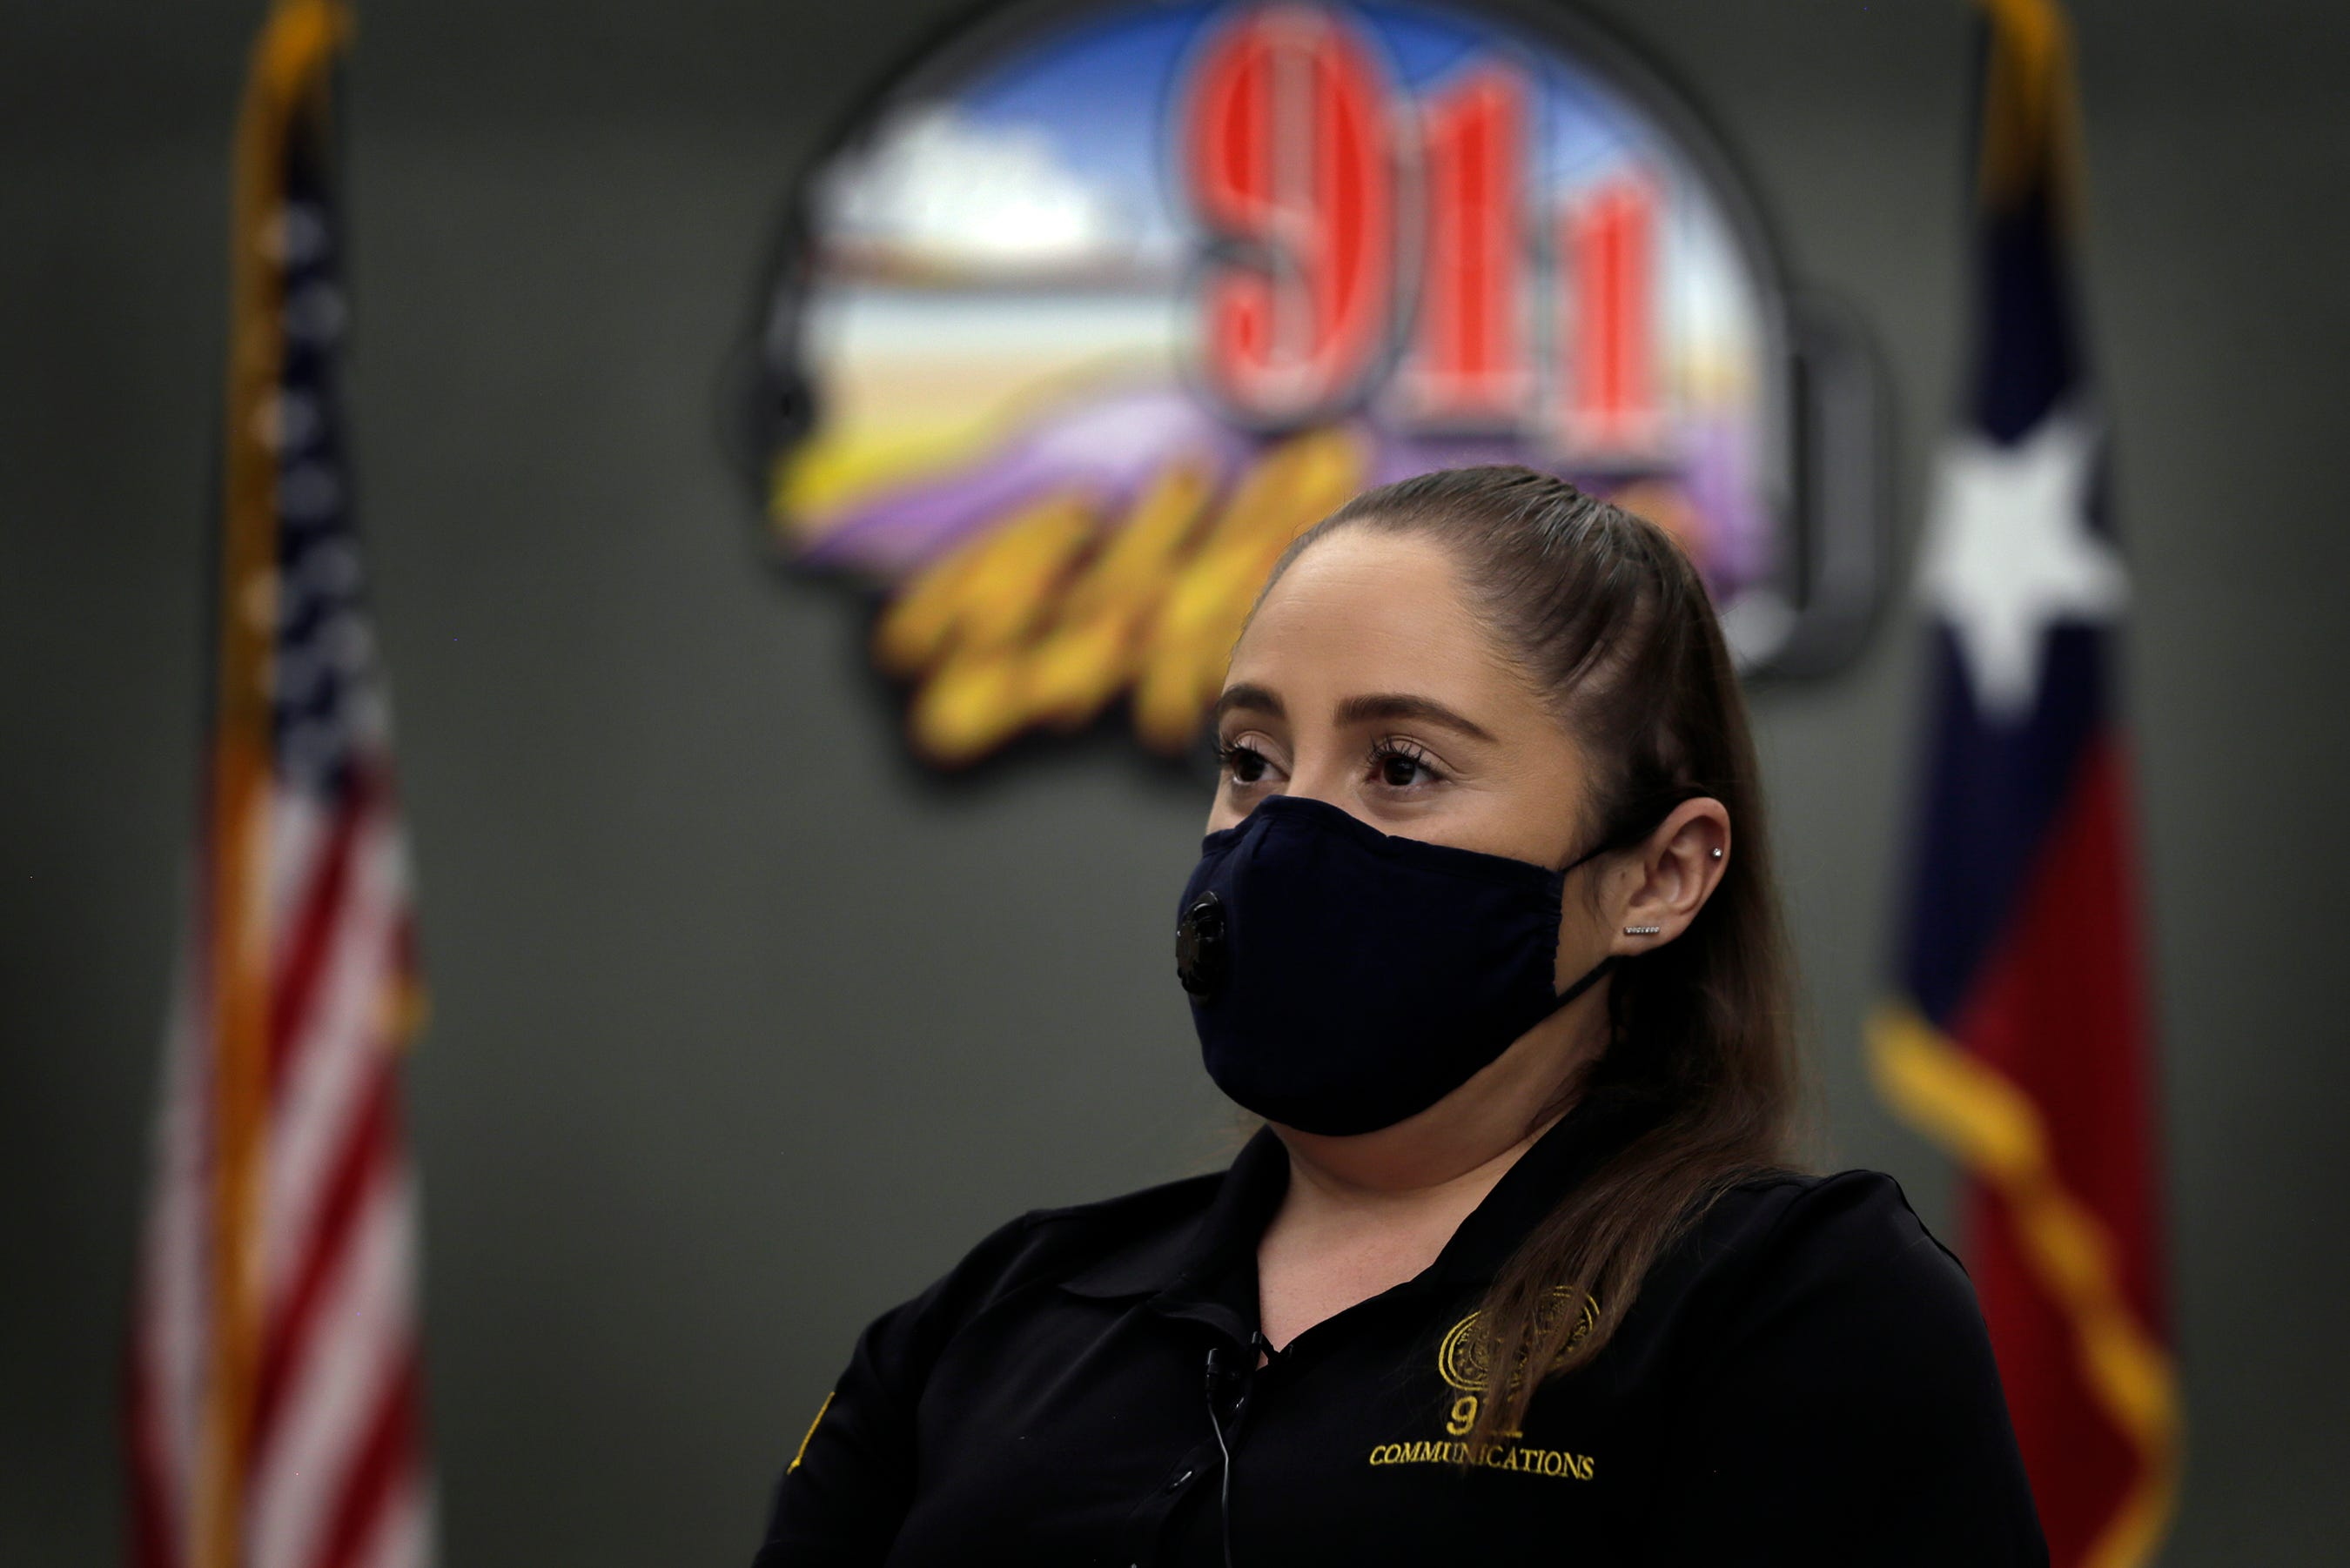 911 Public Safety Telecommunicator Bernardette Falcon took the first call on Aug. 3 during the mass shooting at Walmart in El Paso.